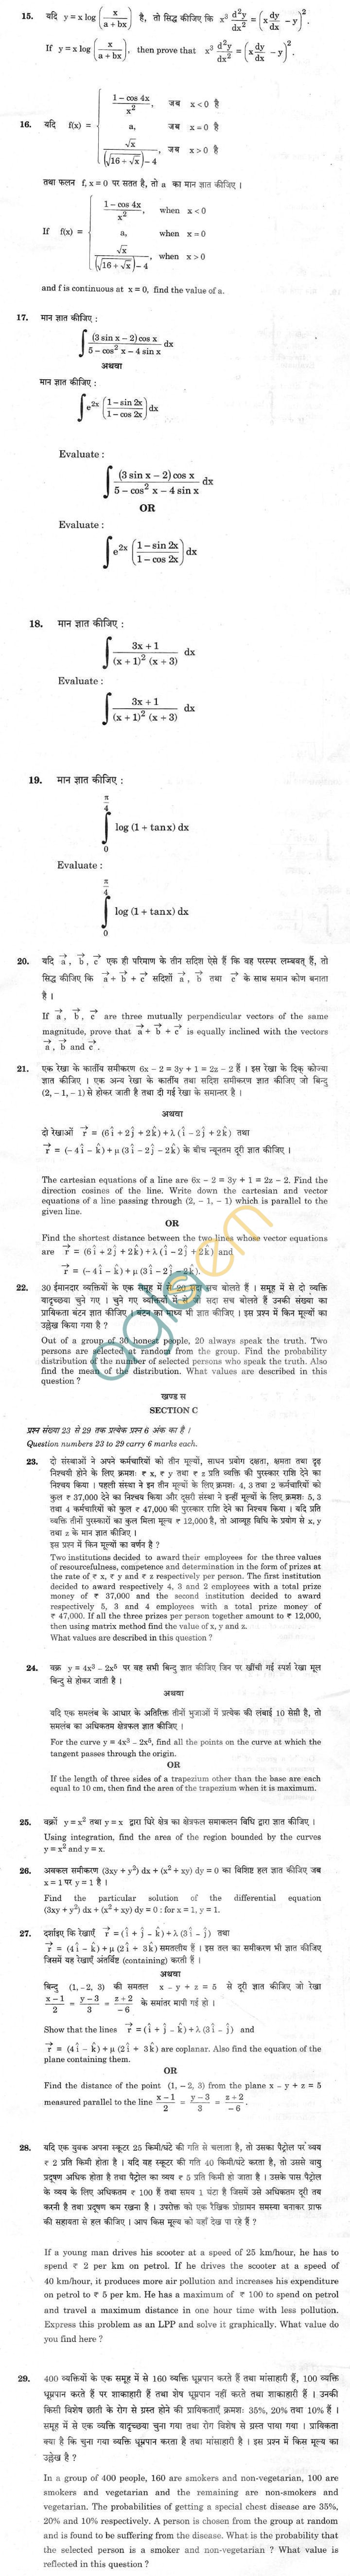 CBSE Compartment Exam 2013 Class XII Question Paper - Mathematics